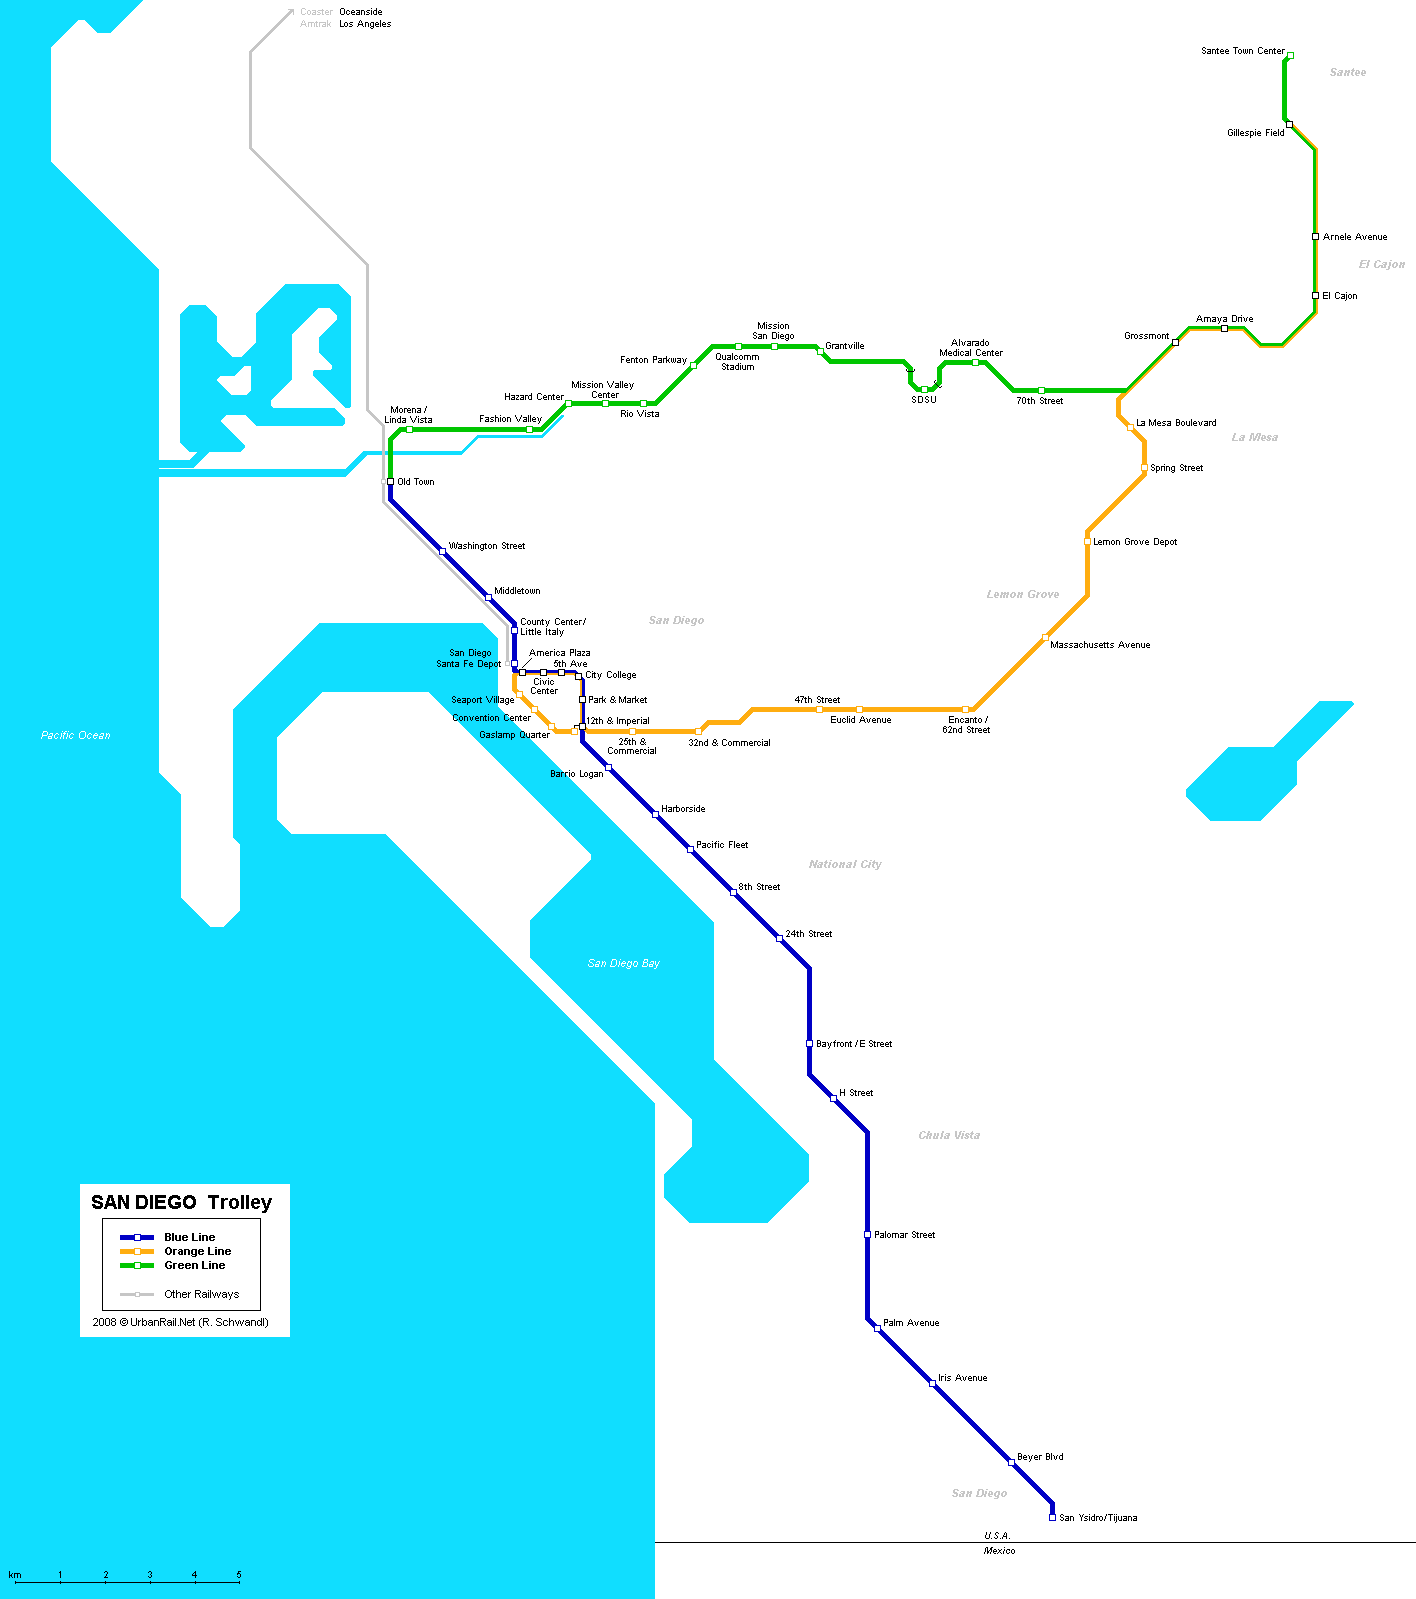 San Diego Subway Map.San Diego Subway Map For Download Metro In San Diego High